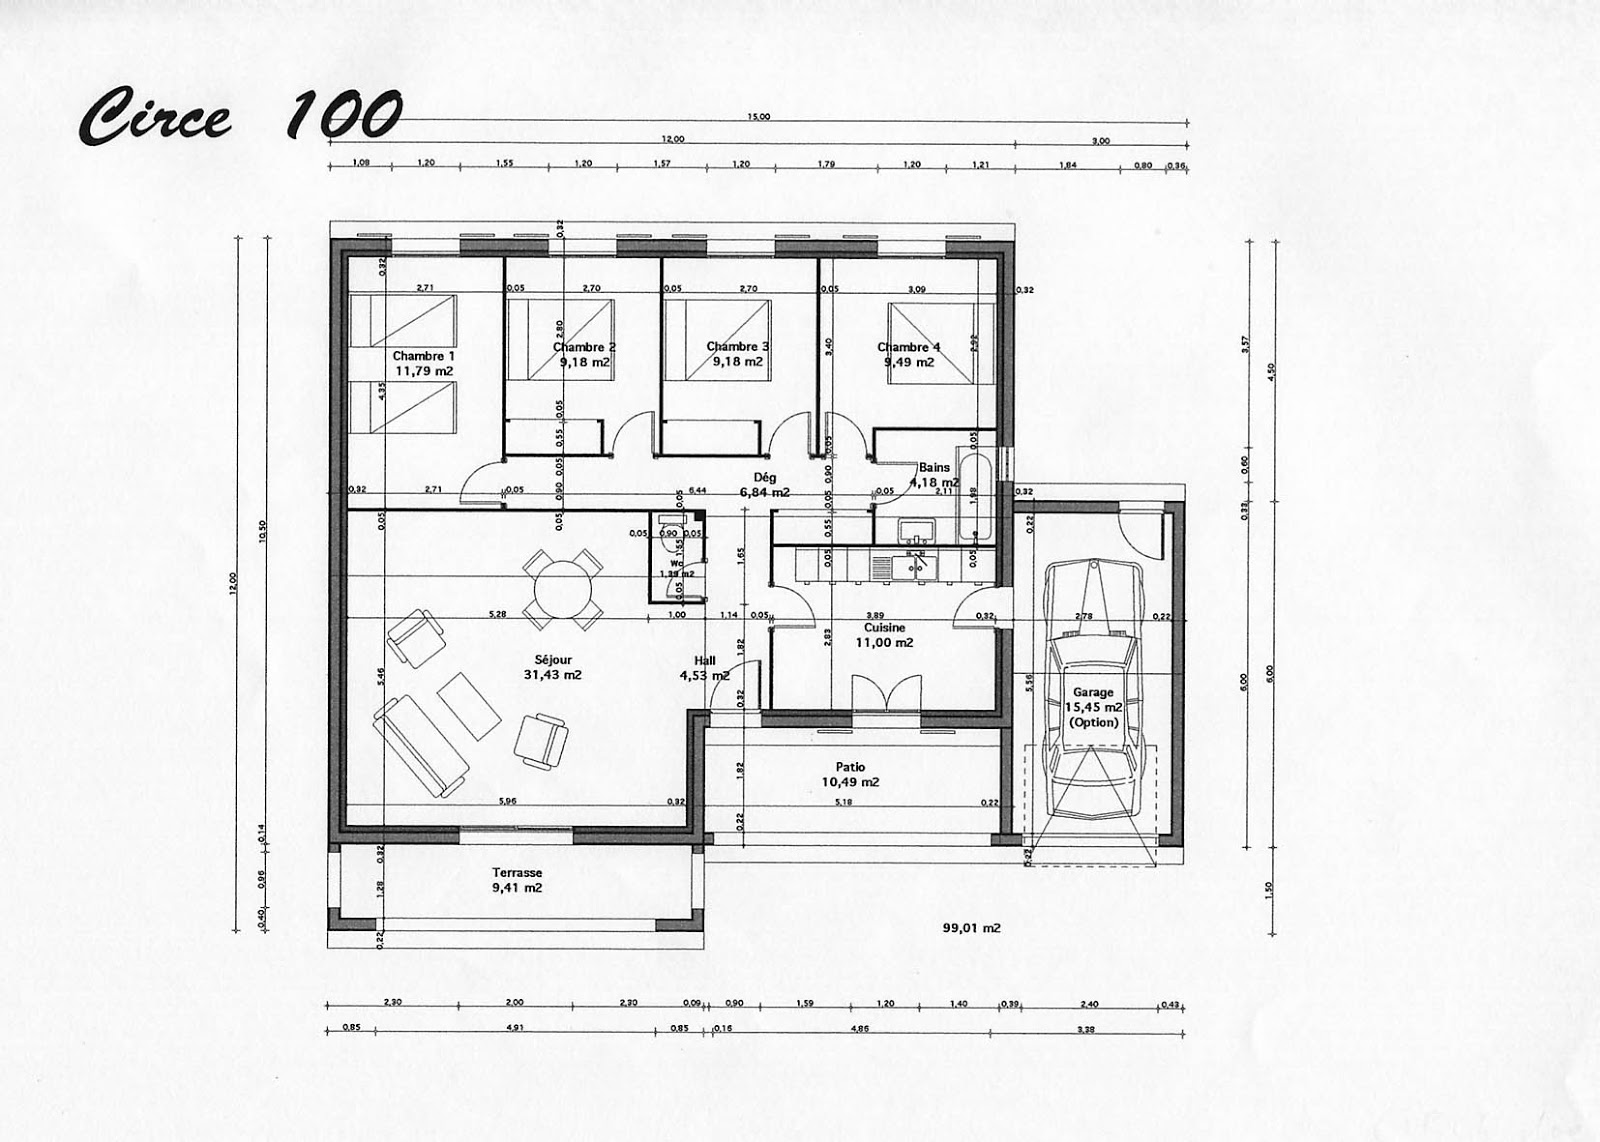 plan de maison moderne gratuit pdf plan de maison pdf plan au sol plan de maison en l avec 4. Black Bedroom Furniture Sets. Home Design Ideas